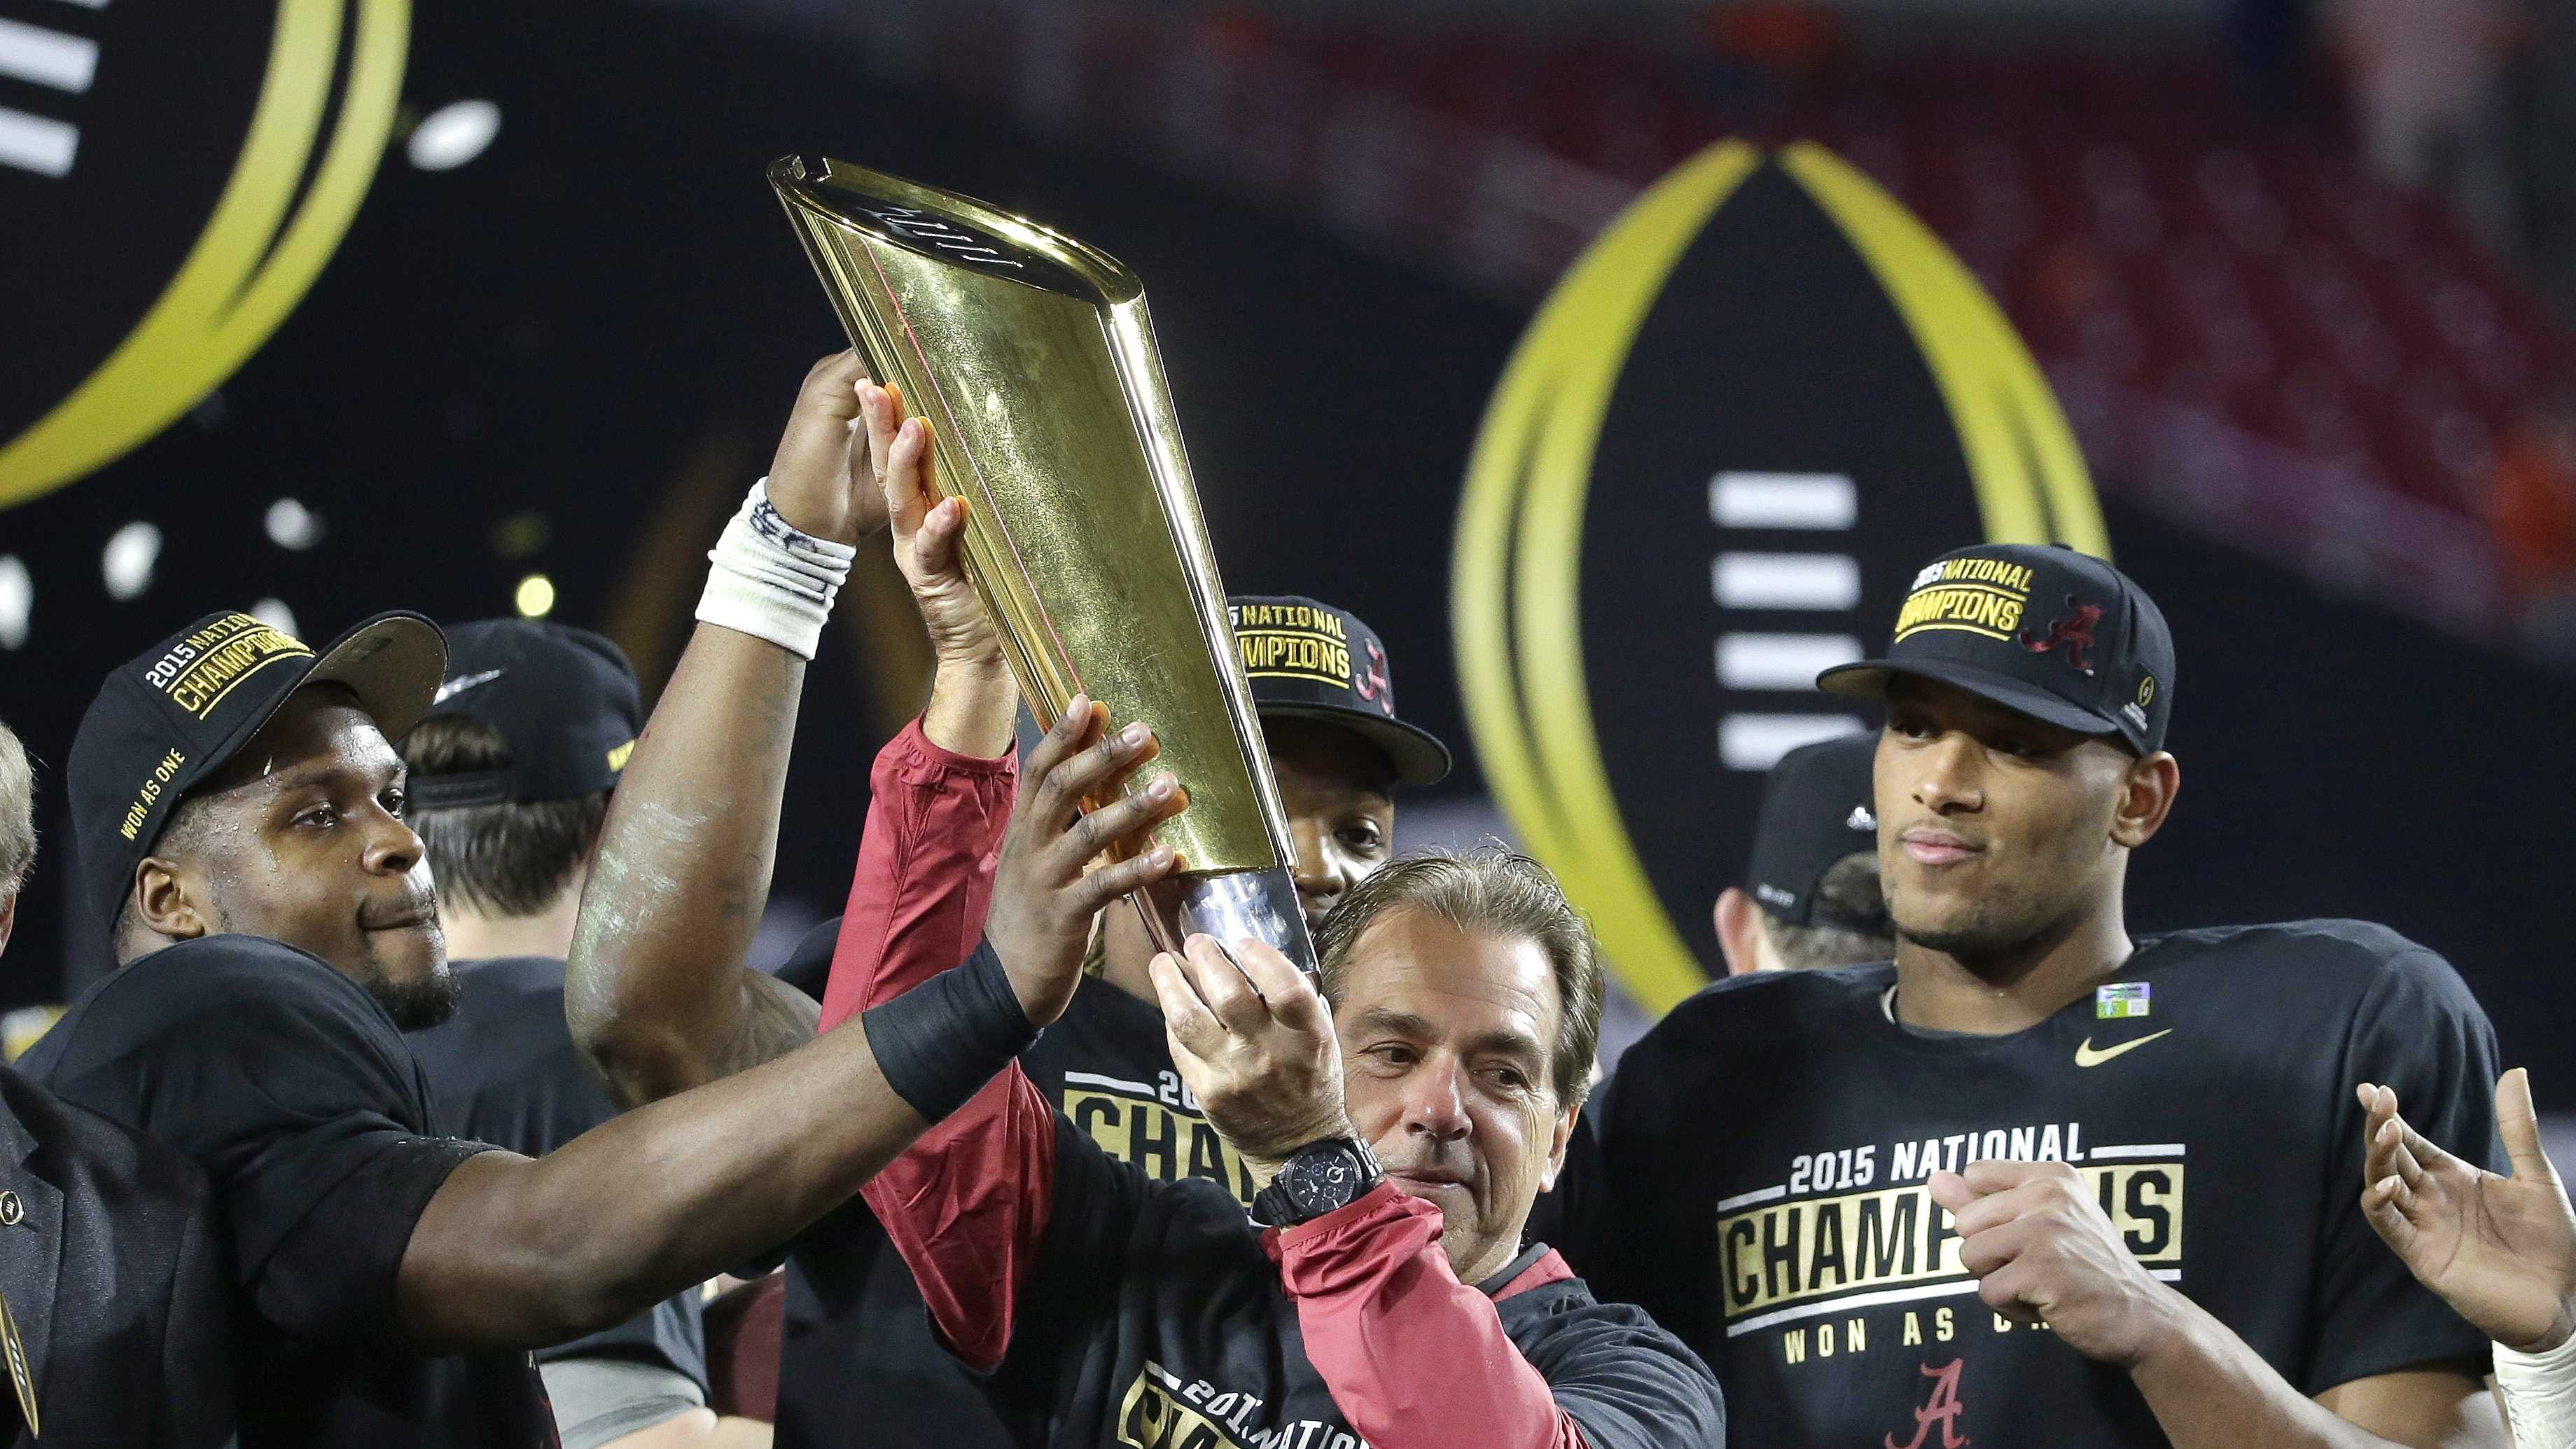 Alabama head coach Nick Saban, center, holds up the championship trophy with players after the NCAA college football playoff championship game against Clemson Monday, Jan. 11, 2016, in Glendale, Ariz. Alabama won 45-40.